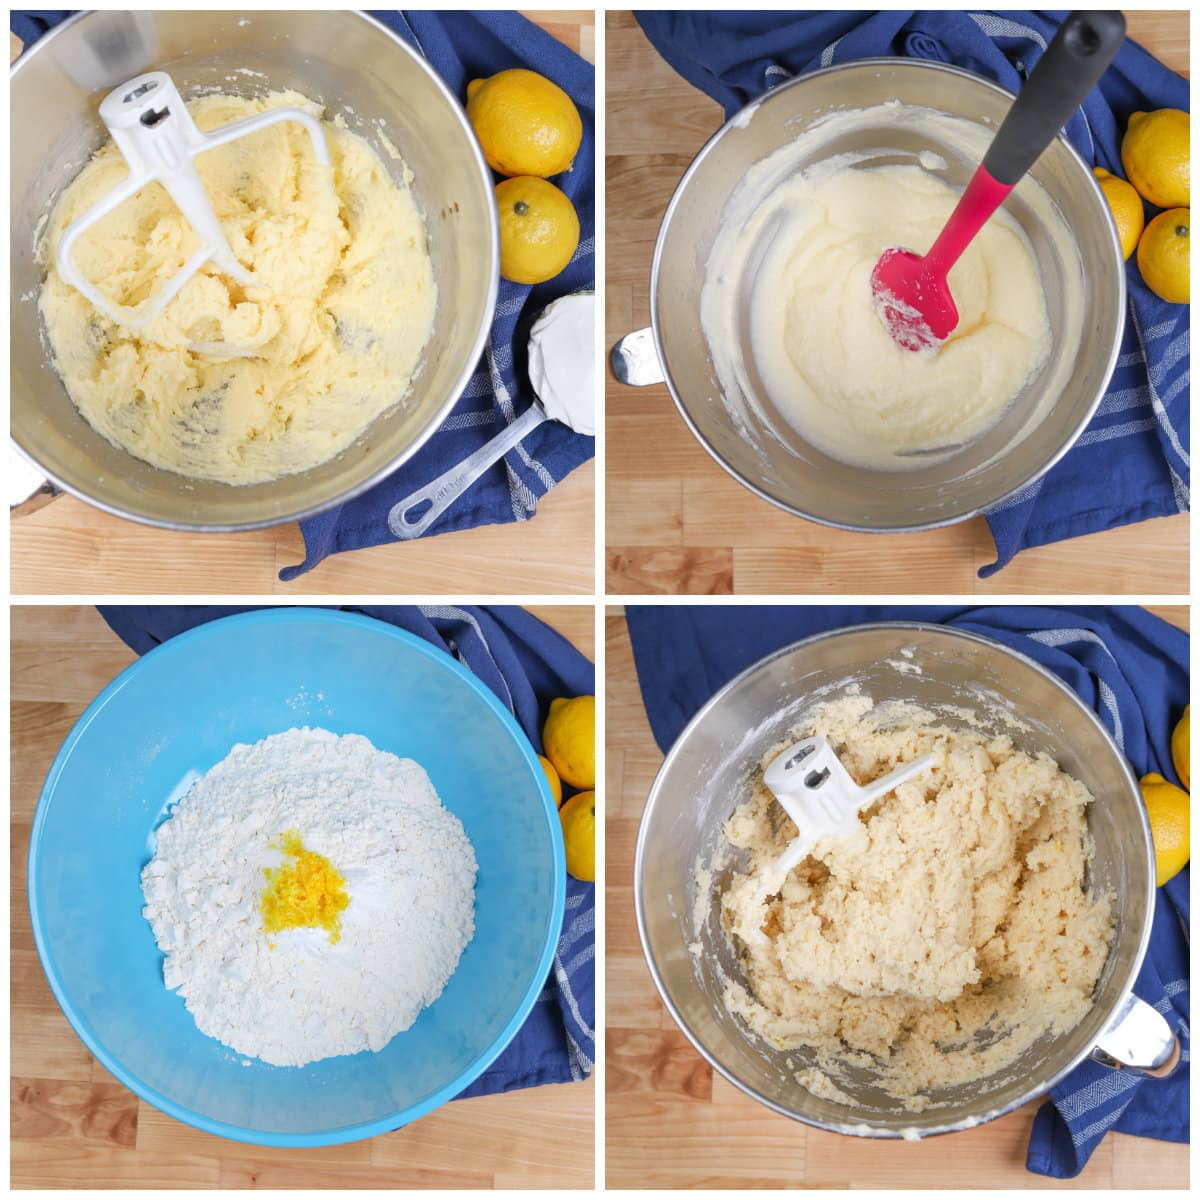 Steps to make cookie dough